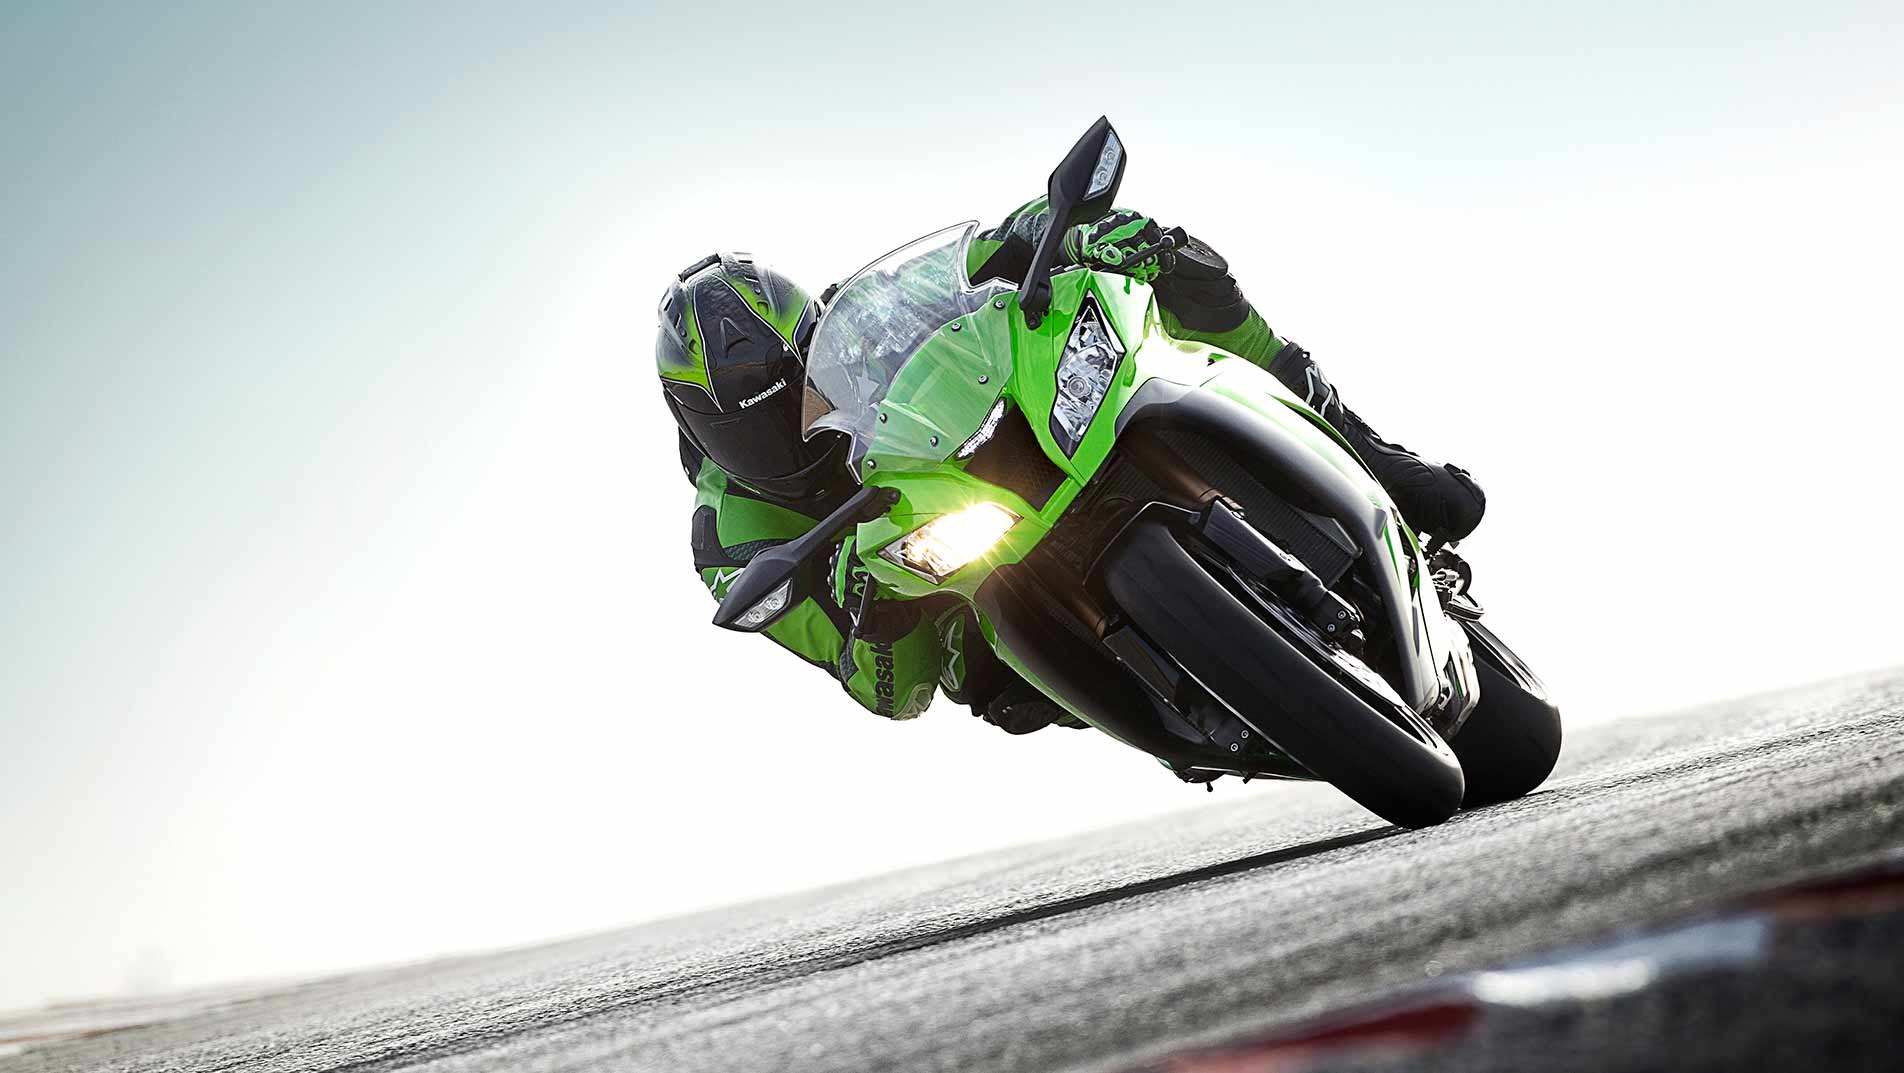 2011-k-zx-10r-gross-11MY_ZX-10R_LIM_Action_4